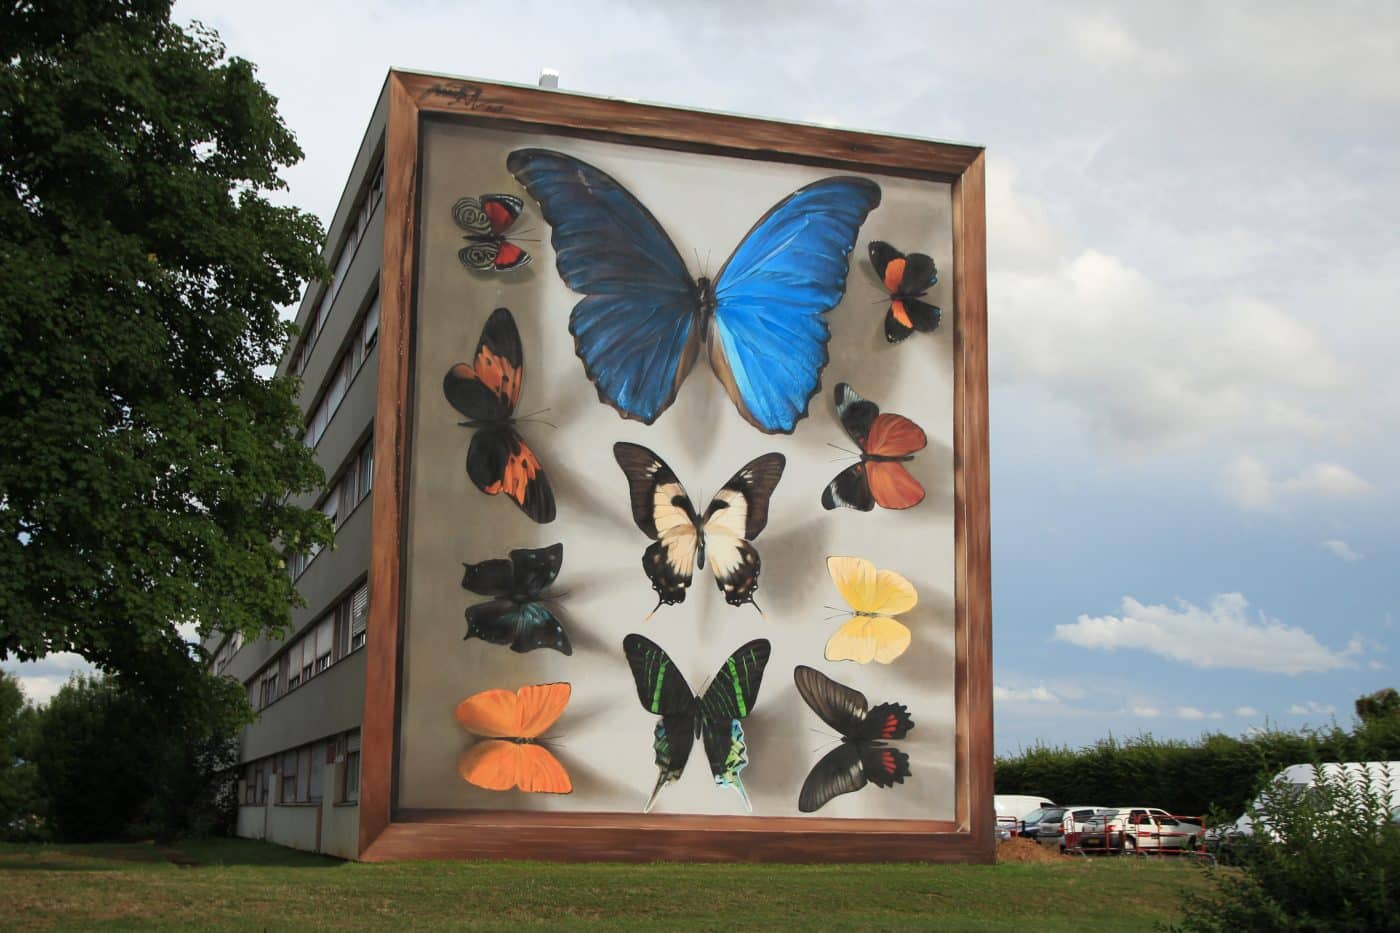 coleccion de mariposas mantra street art